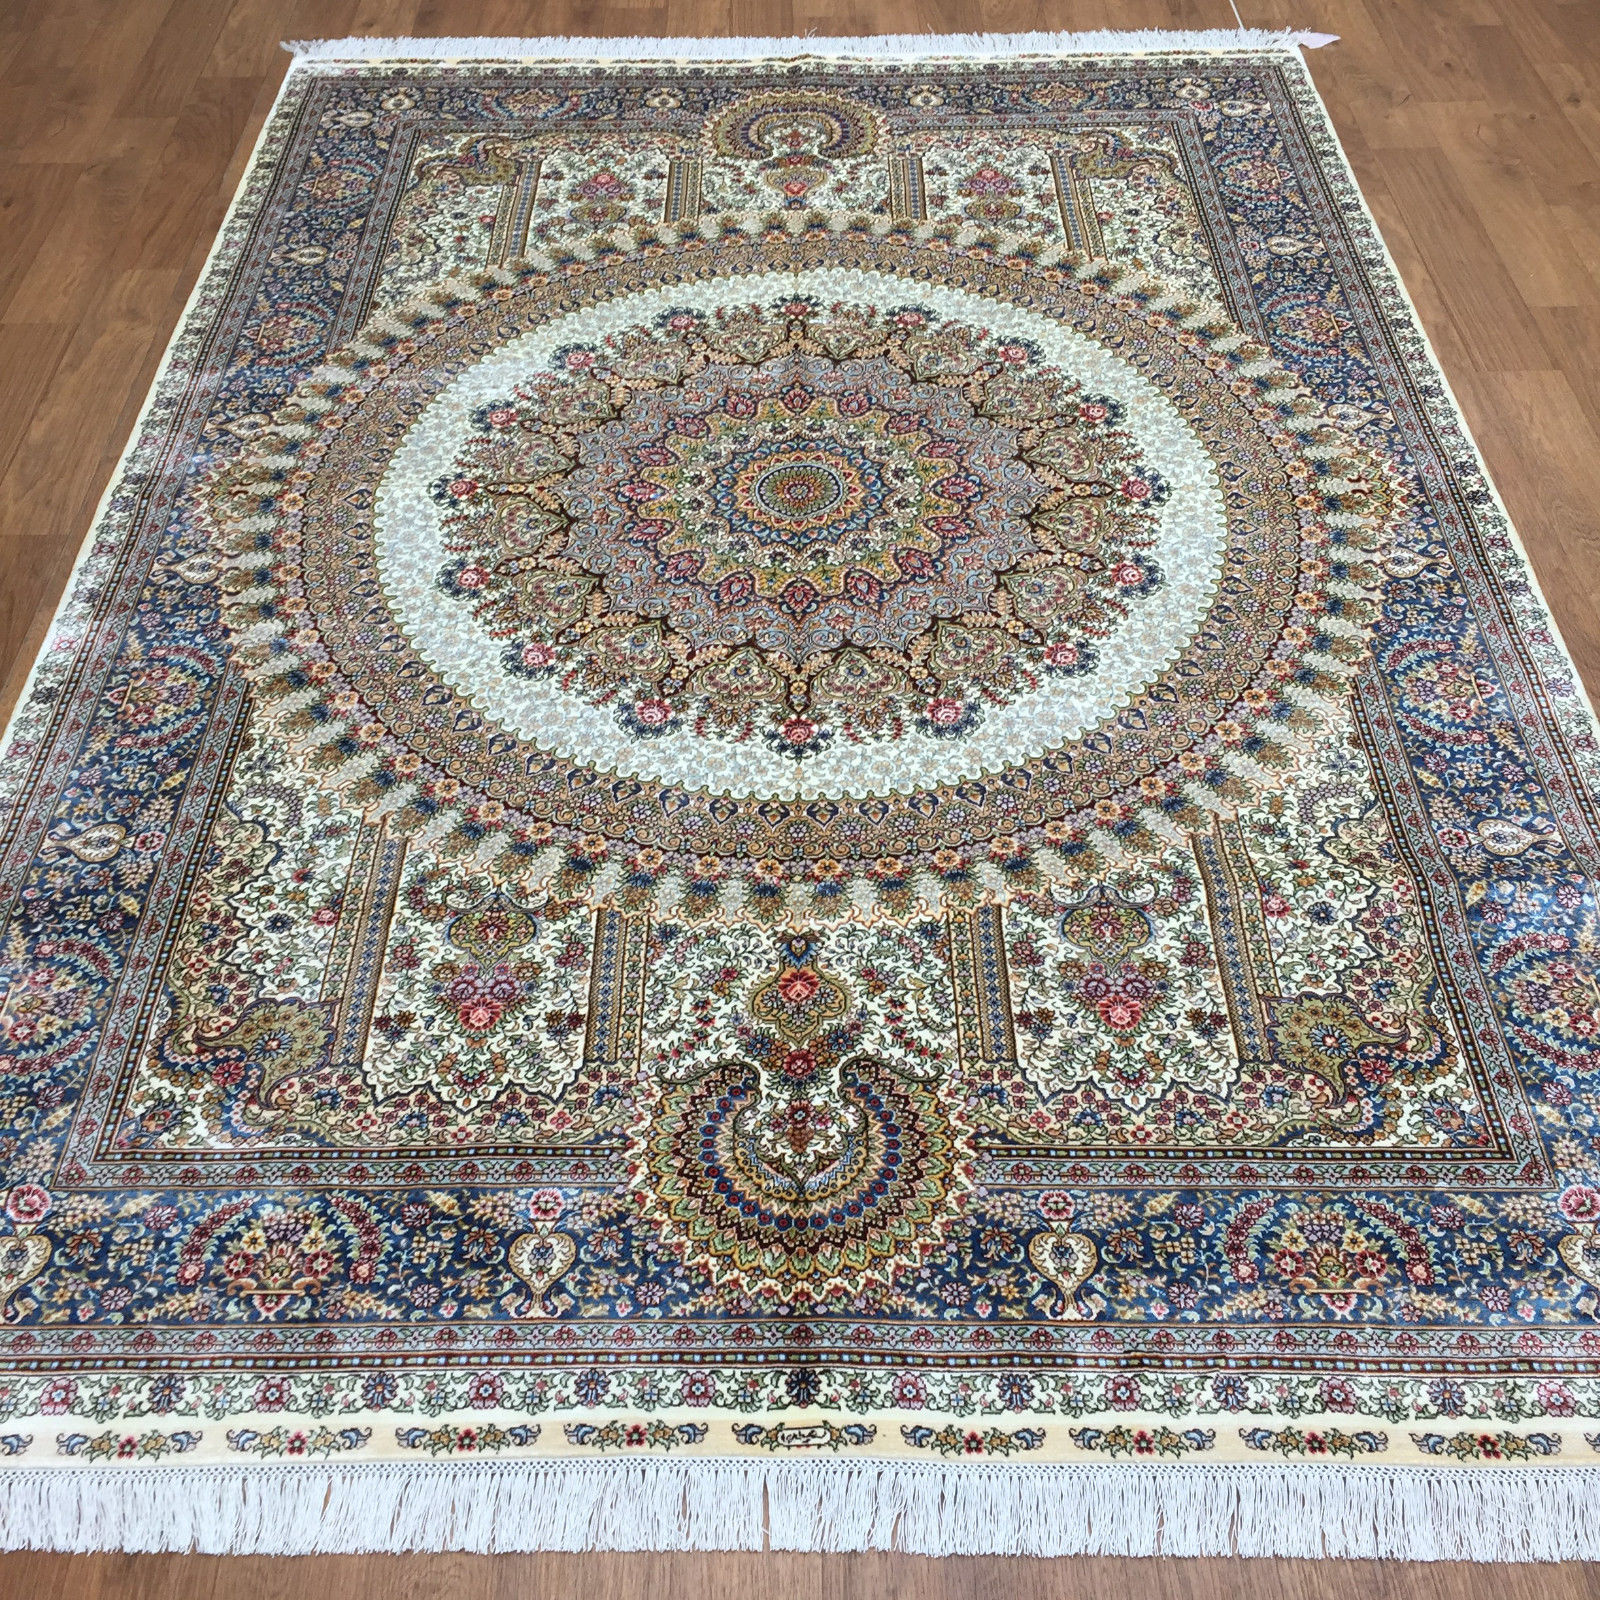 6 39 x 8 39 chinese silk rug handmade silk rugs for bedrooms attractive oriental rug ebay. Black Bedroom Furniture Sets. Home Design Ideas